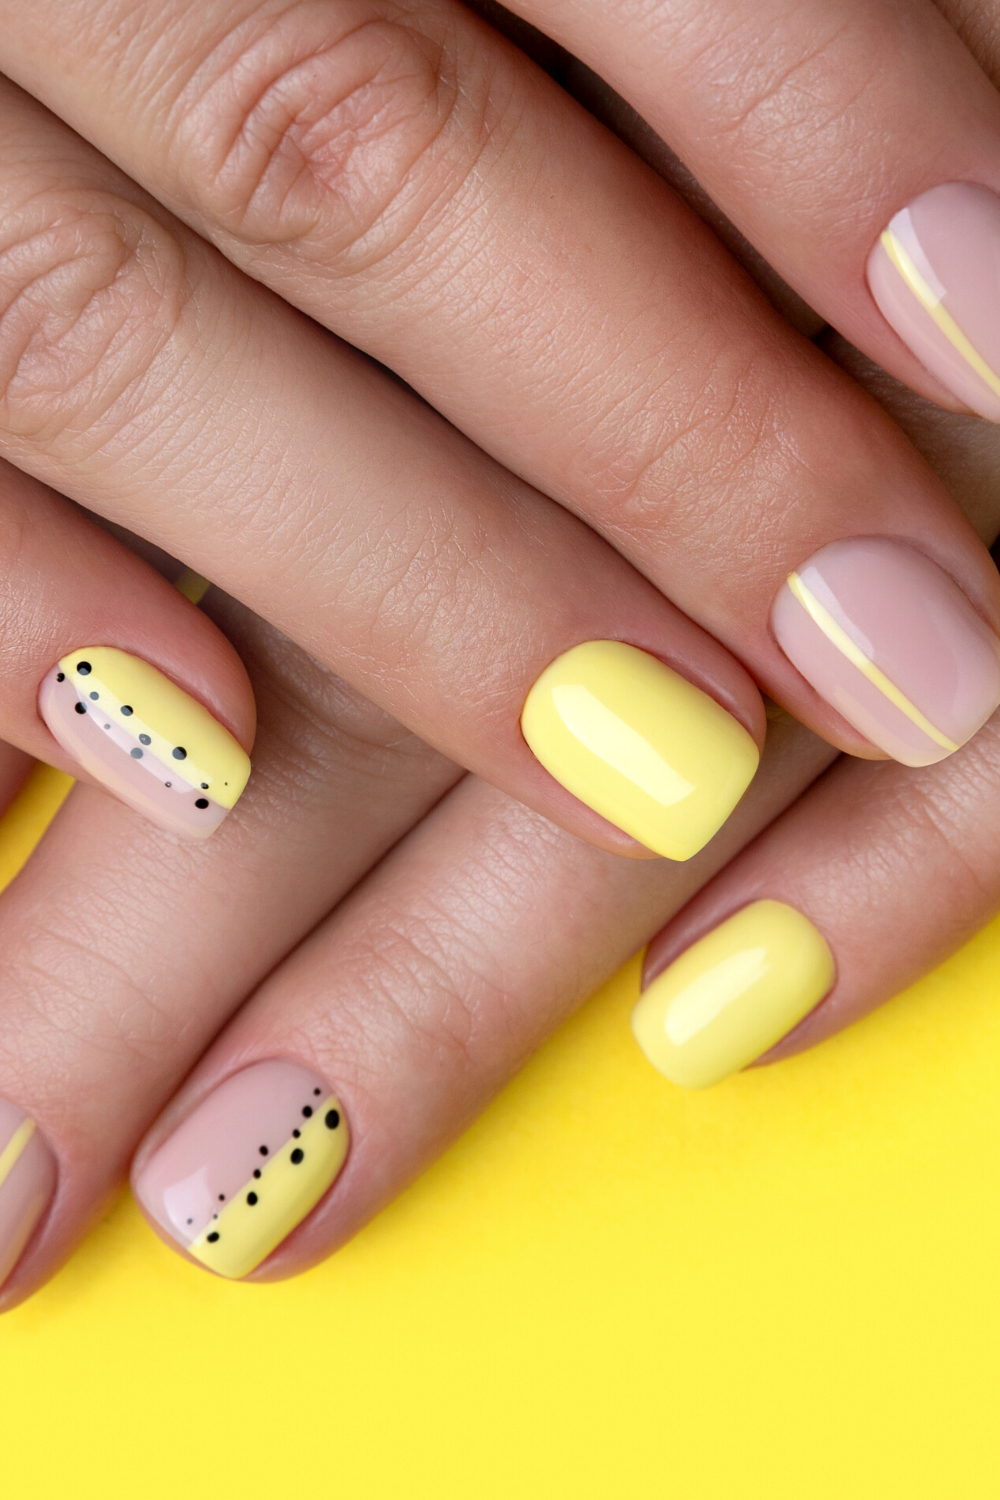 Minimal Short Pale Yellow Nails Design Best Yellow Spring Summer Nails Ideas In 2020 Neon Yellow Nails Yellow Nails Design Yellow Nails